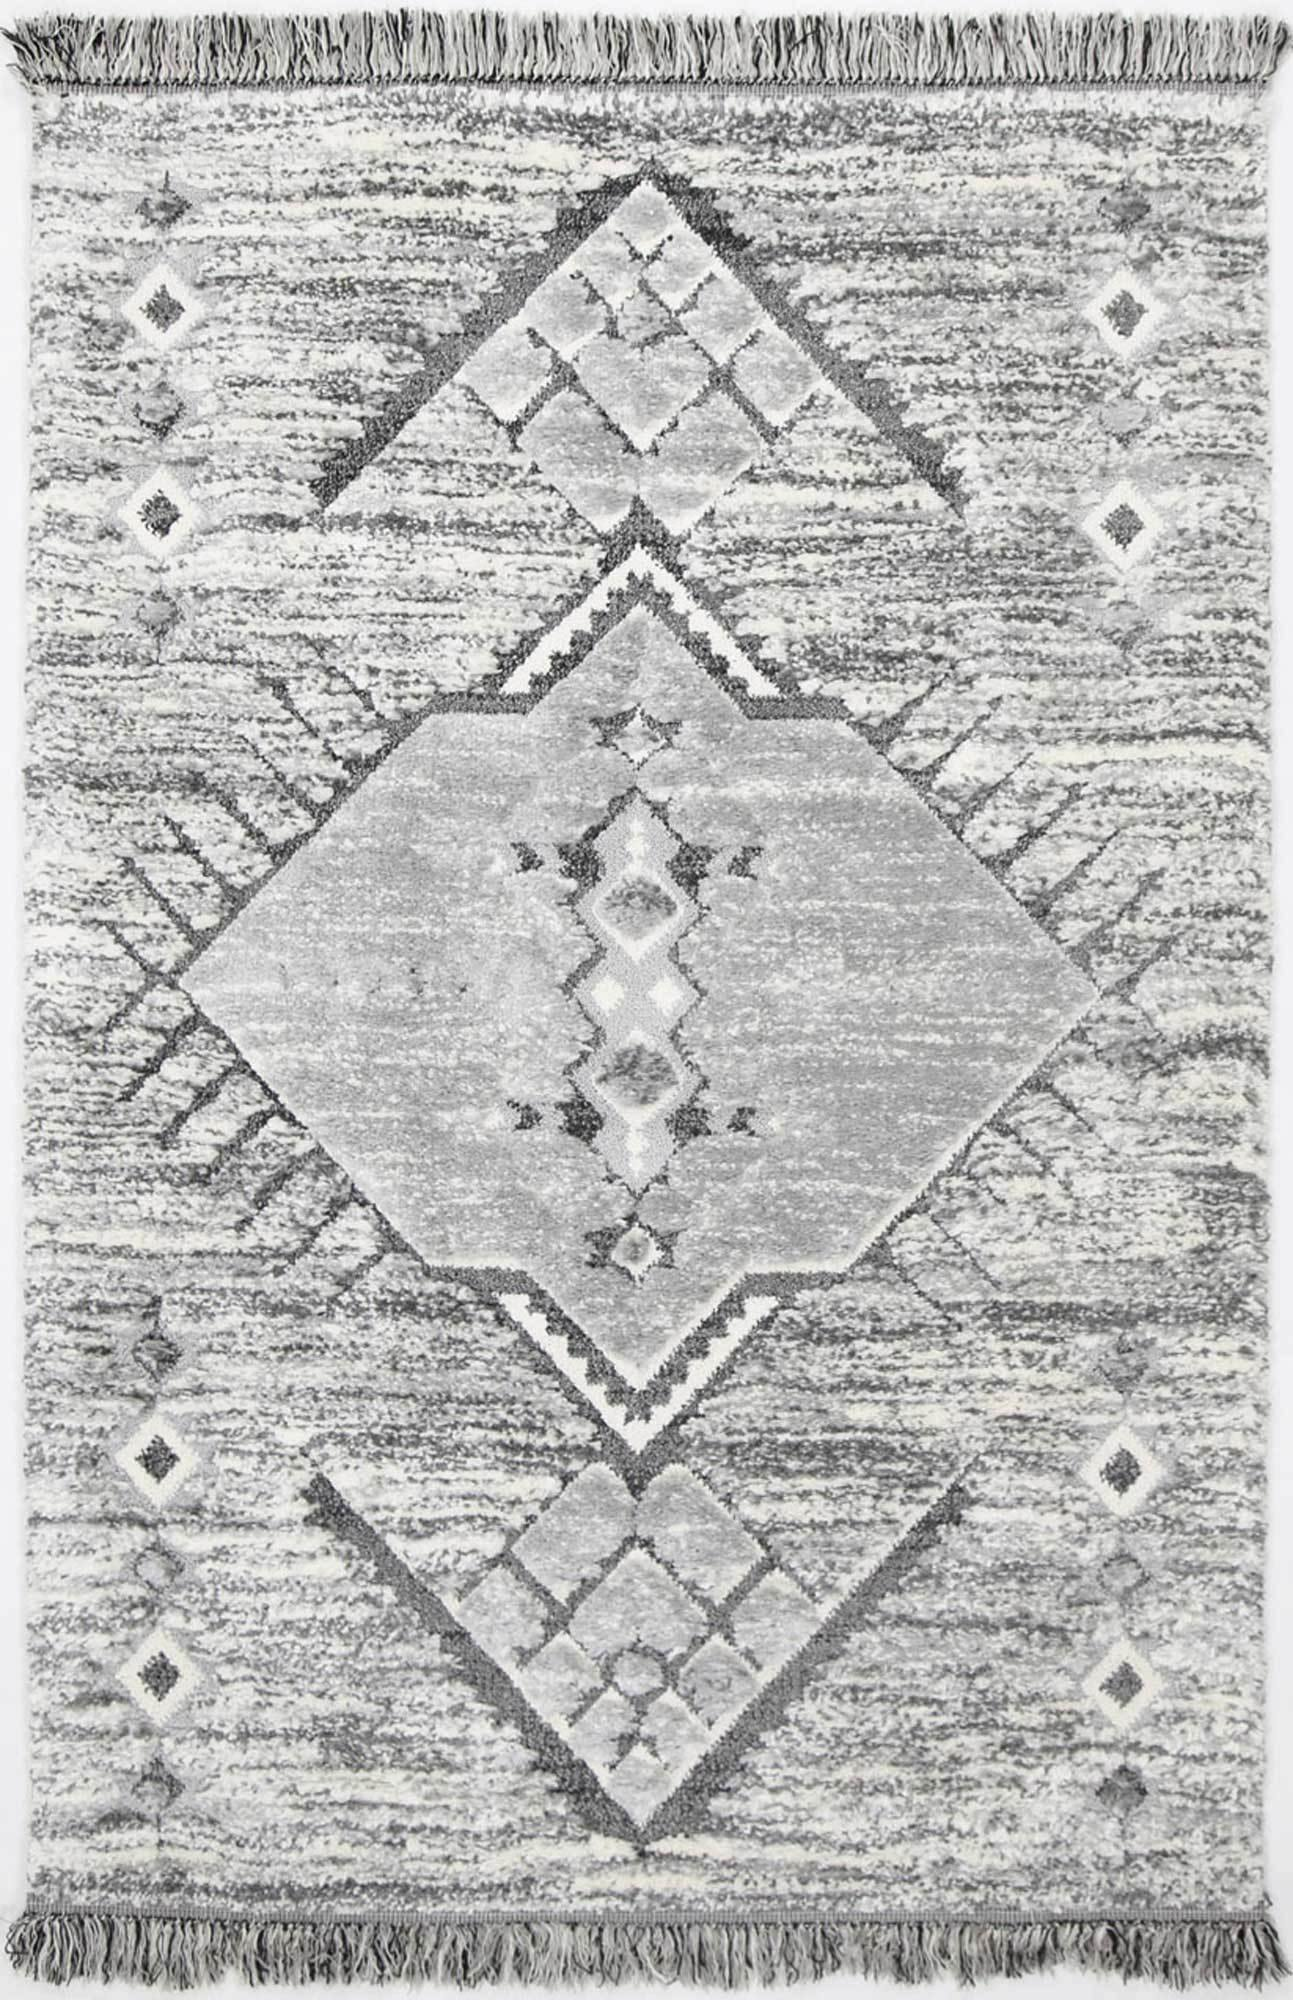 Eternity Mono Tribal Tek Cream Grey - The Rugs